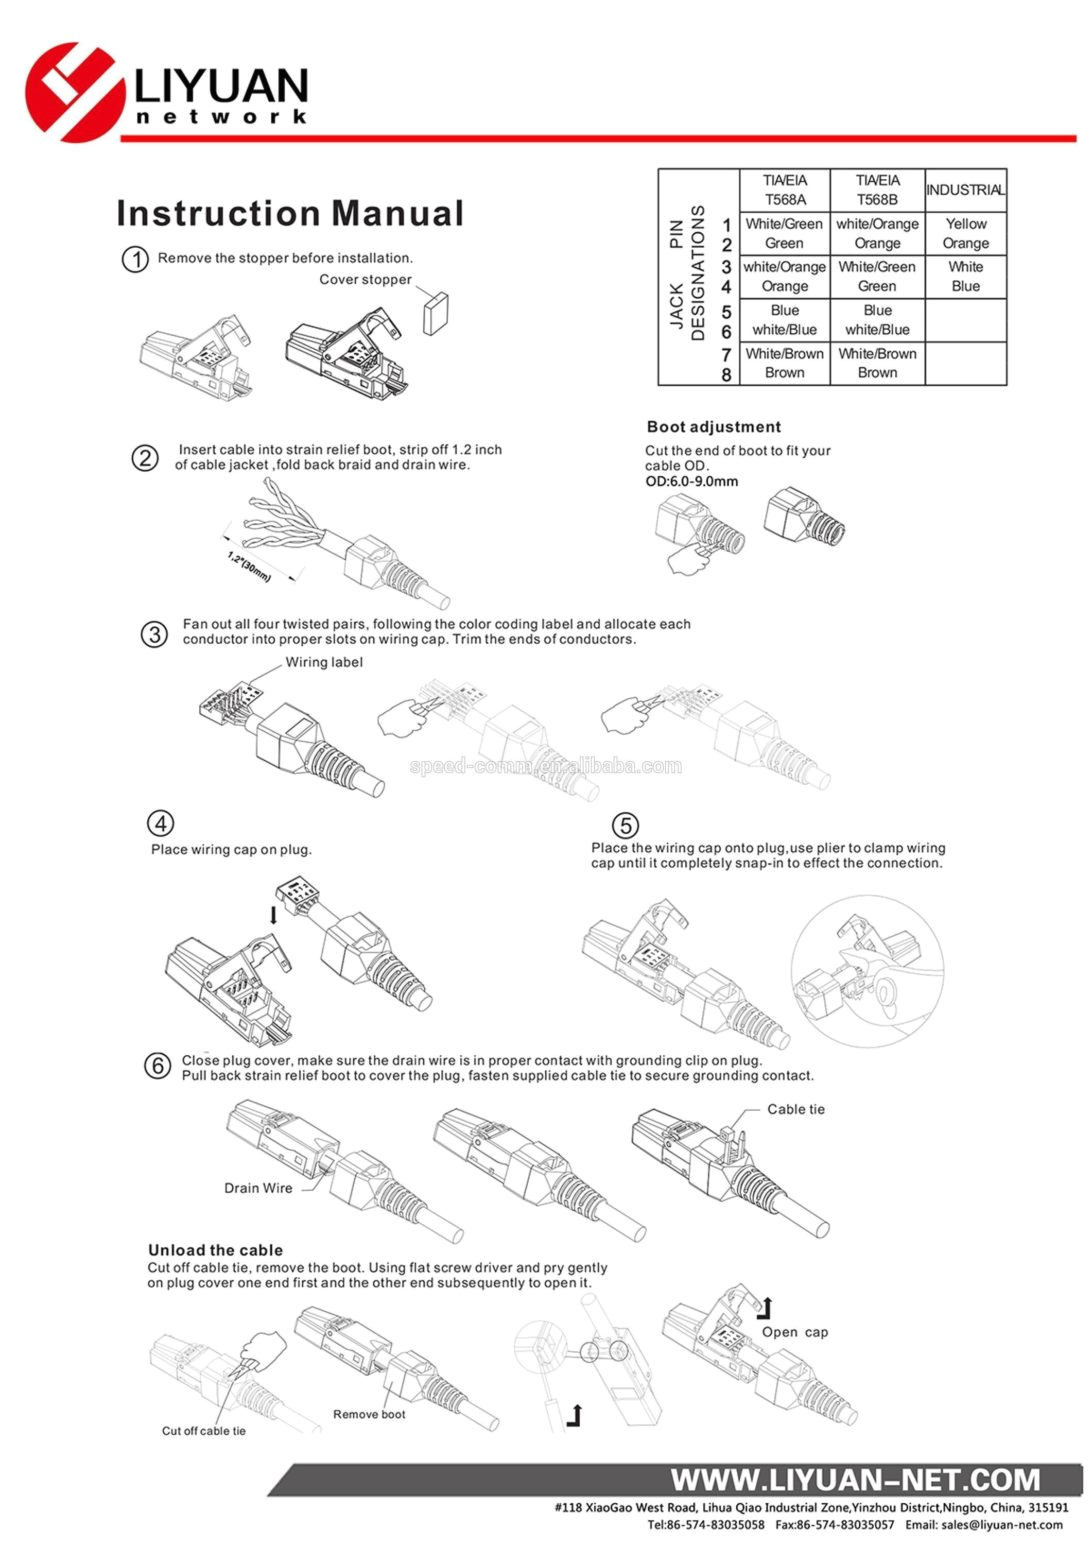 Leer Truck Cap Wiring Diagram Chevy Colorado Camper Shell Craigslist Truck Bed Size Chart